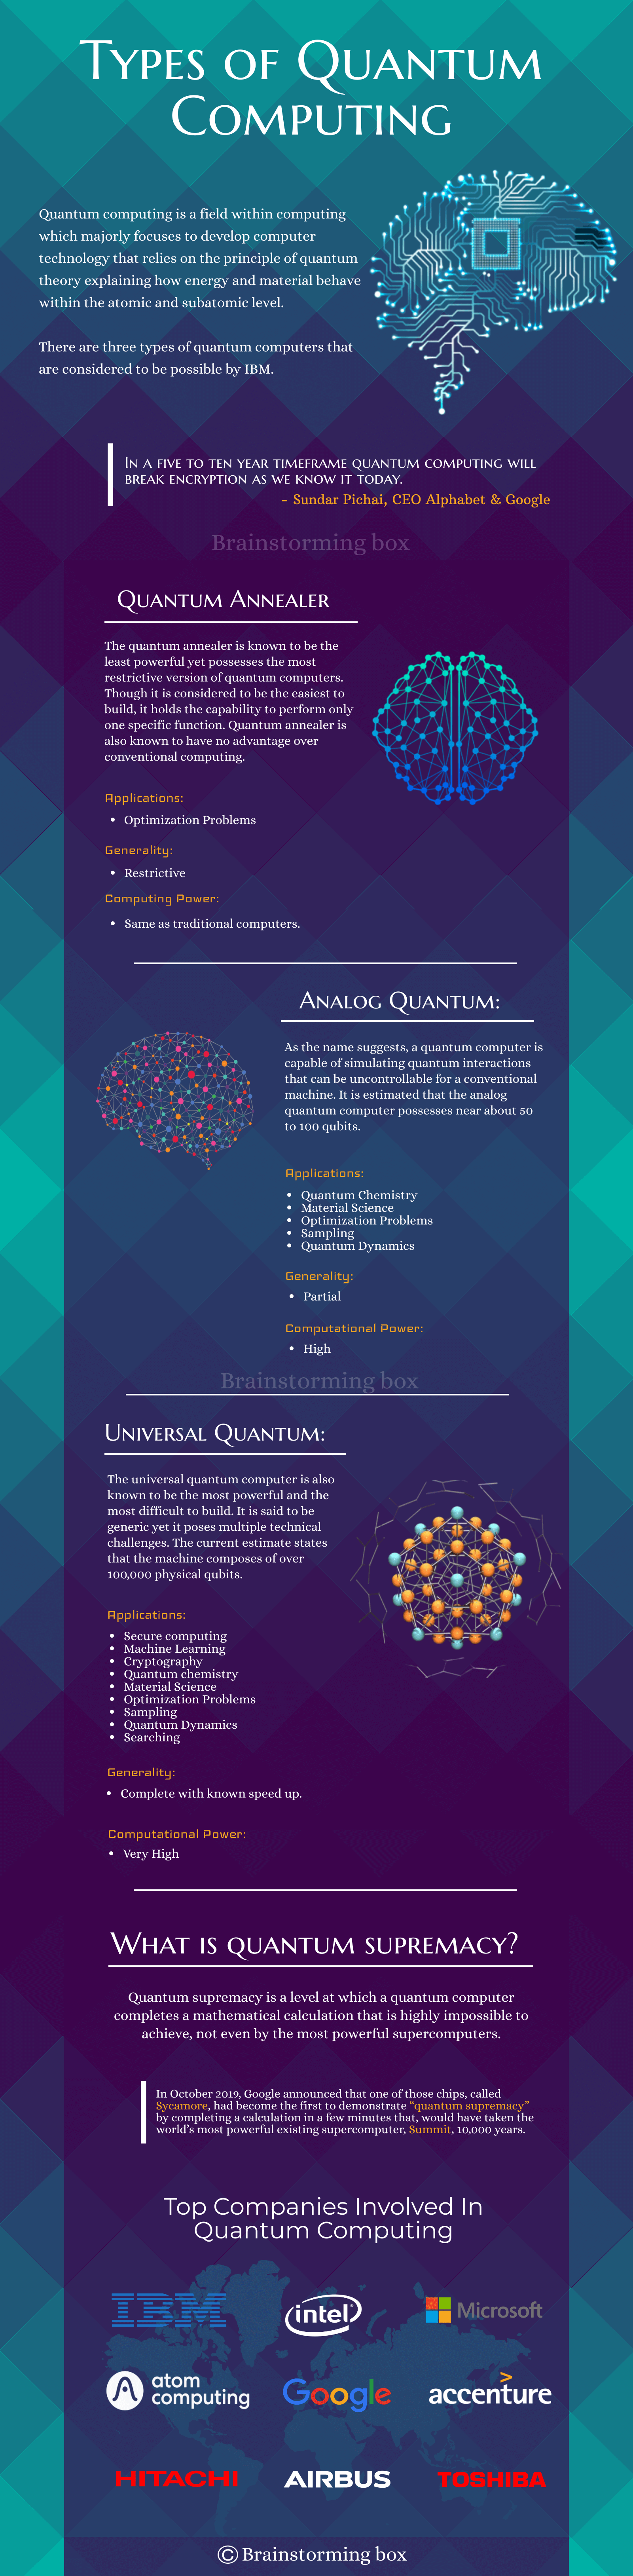 types of quantum computing and their applications